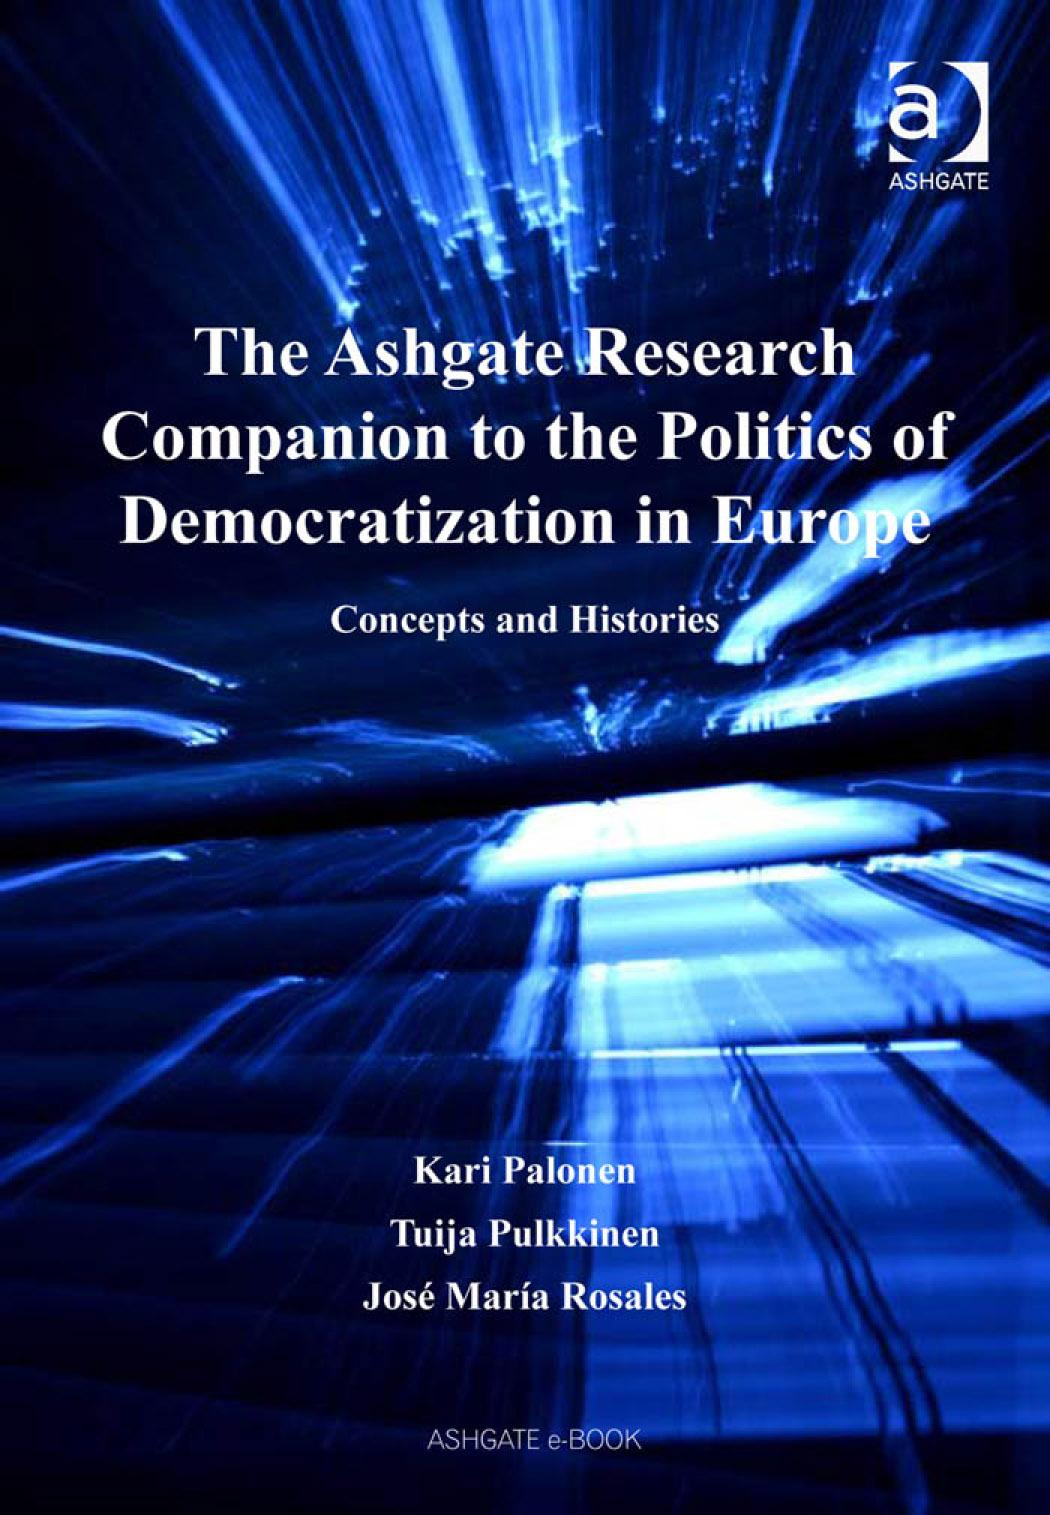 Ashgate Research Companion to the Politics of Democratization in Europe, The: Concepts and Histories EB9780754688792